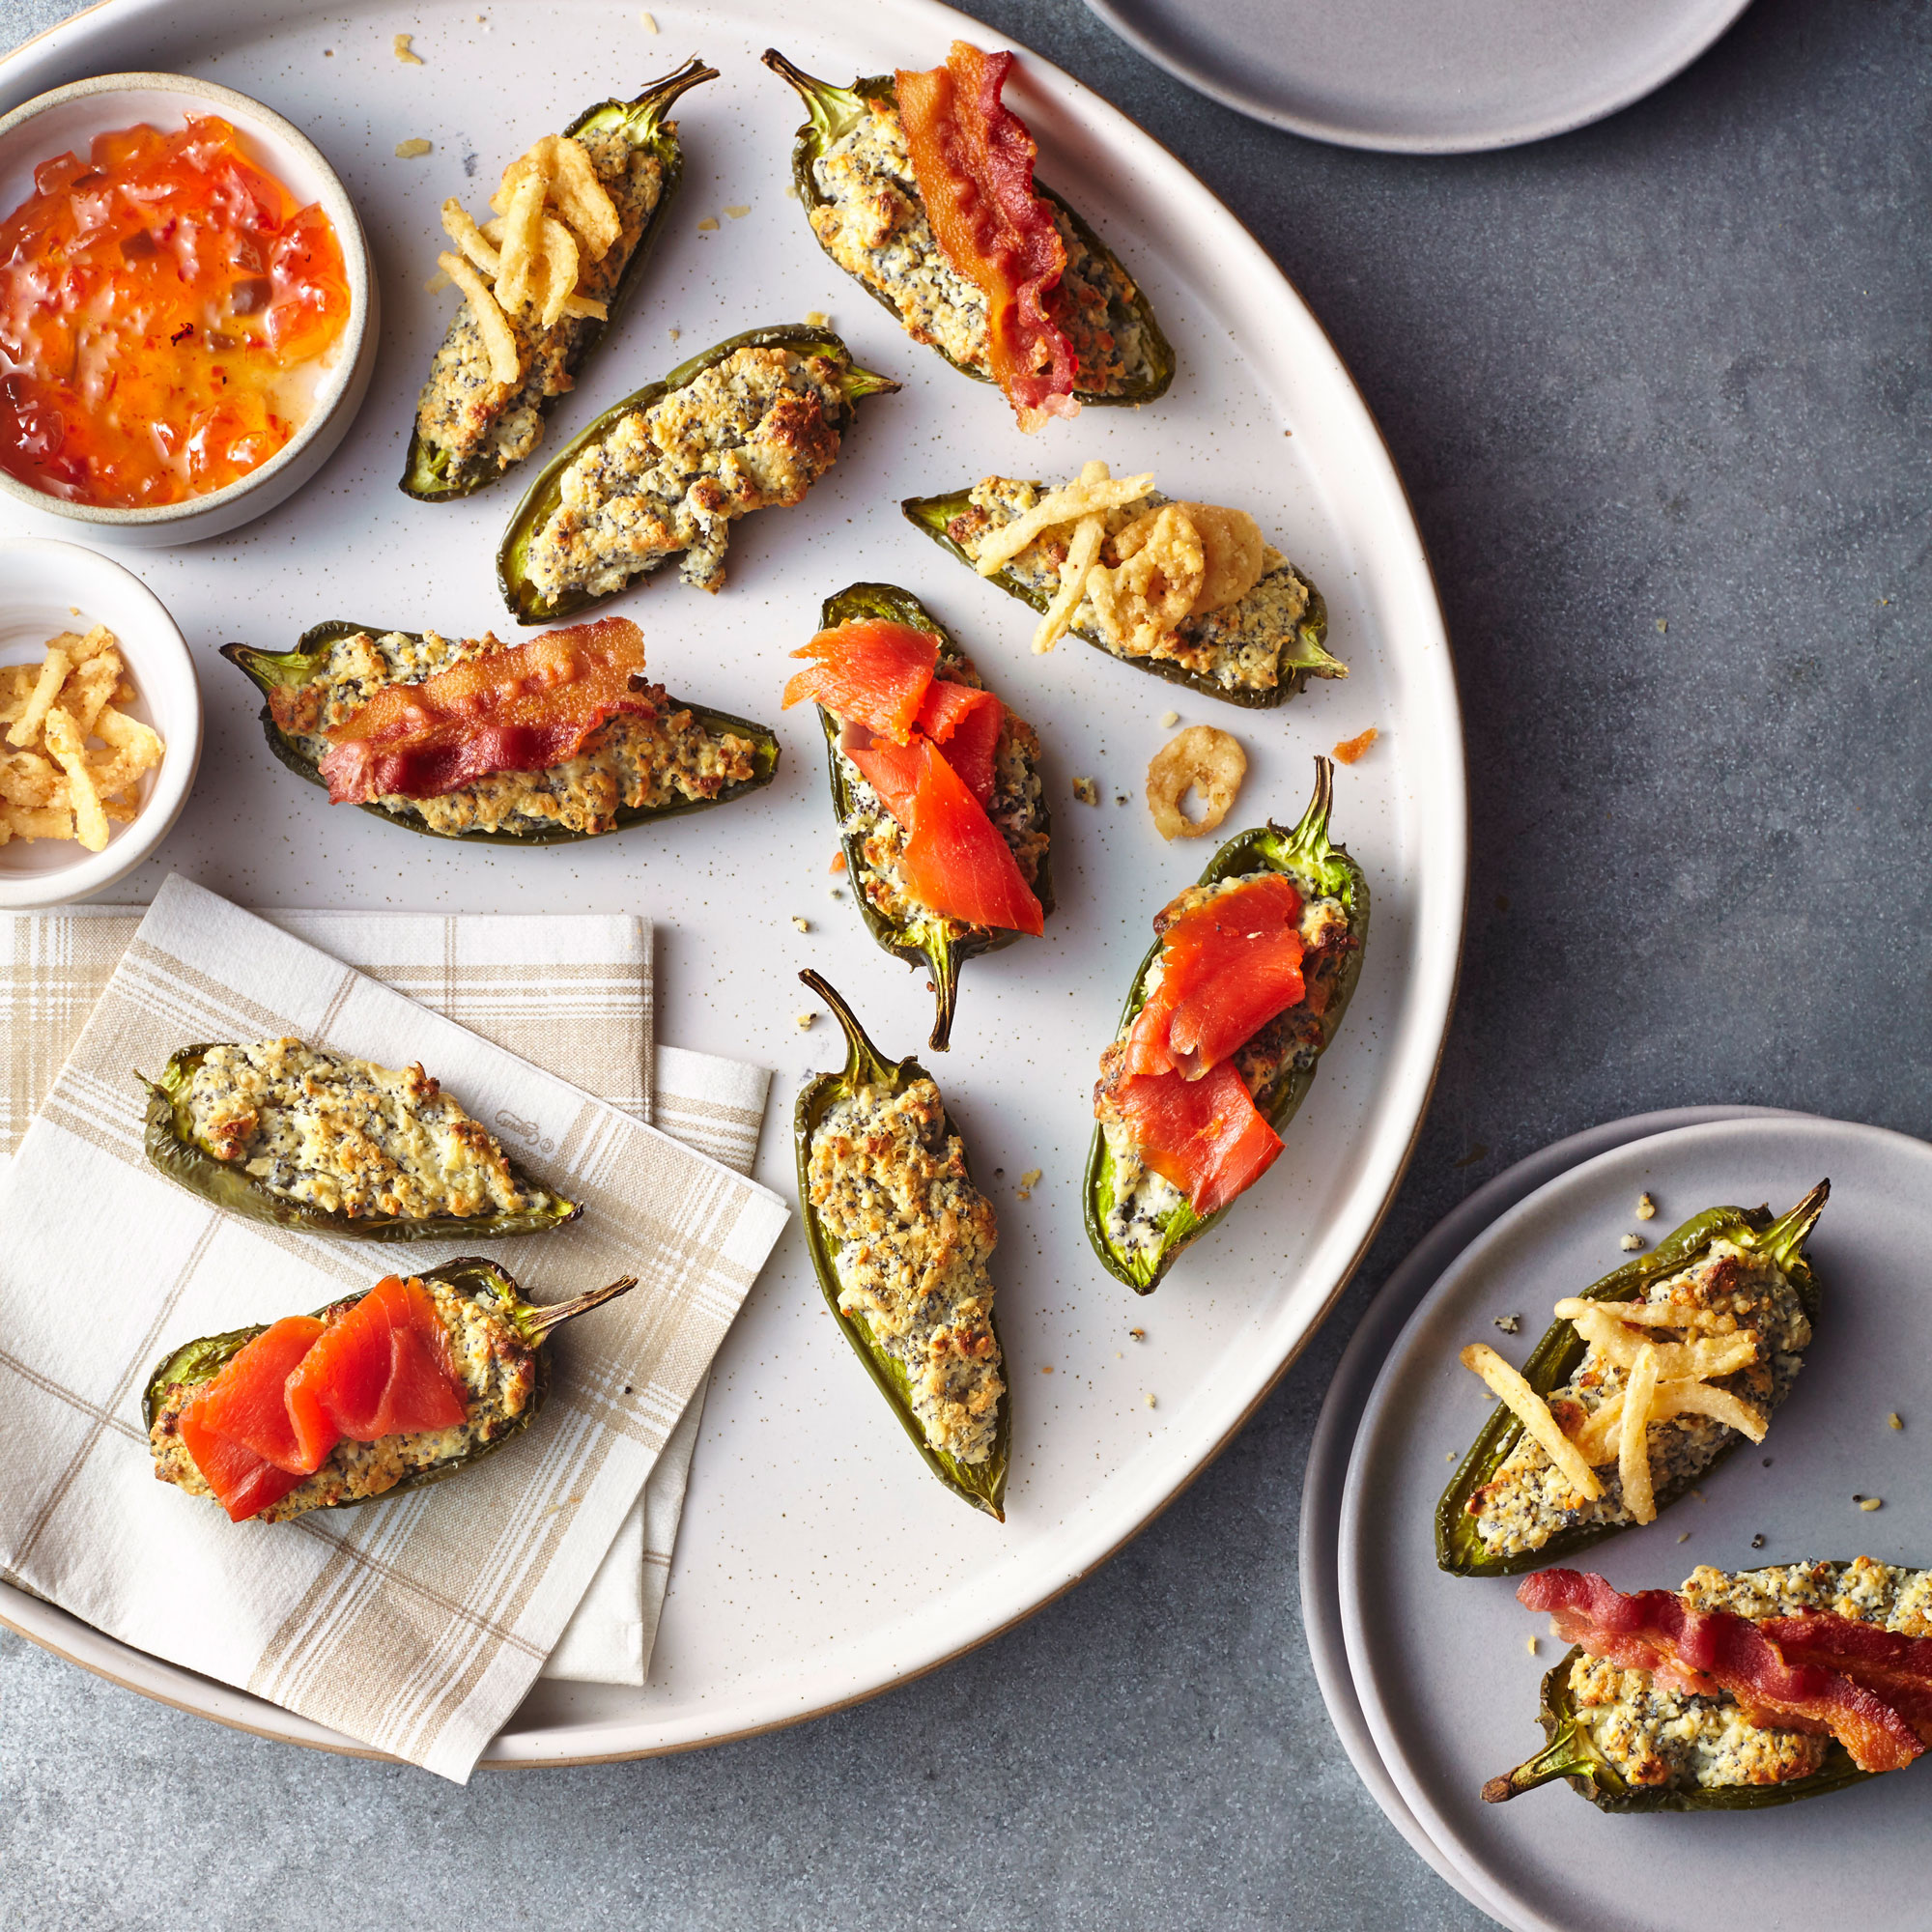 7 Jalapeño Poppers to Get Your Next Party Started